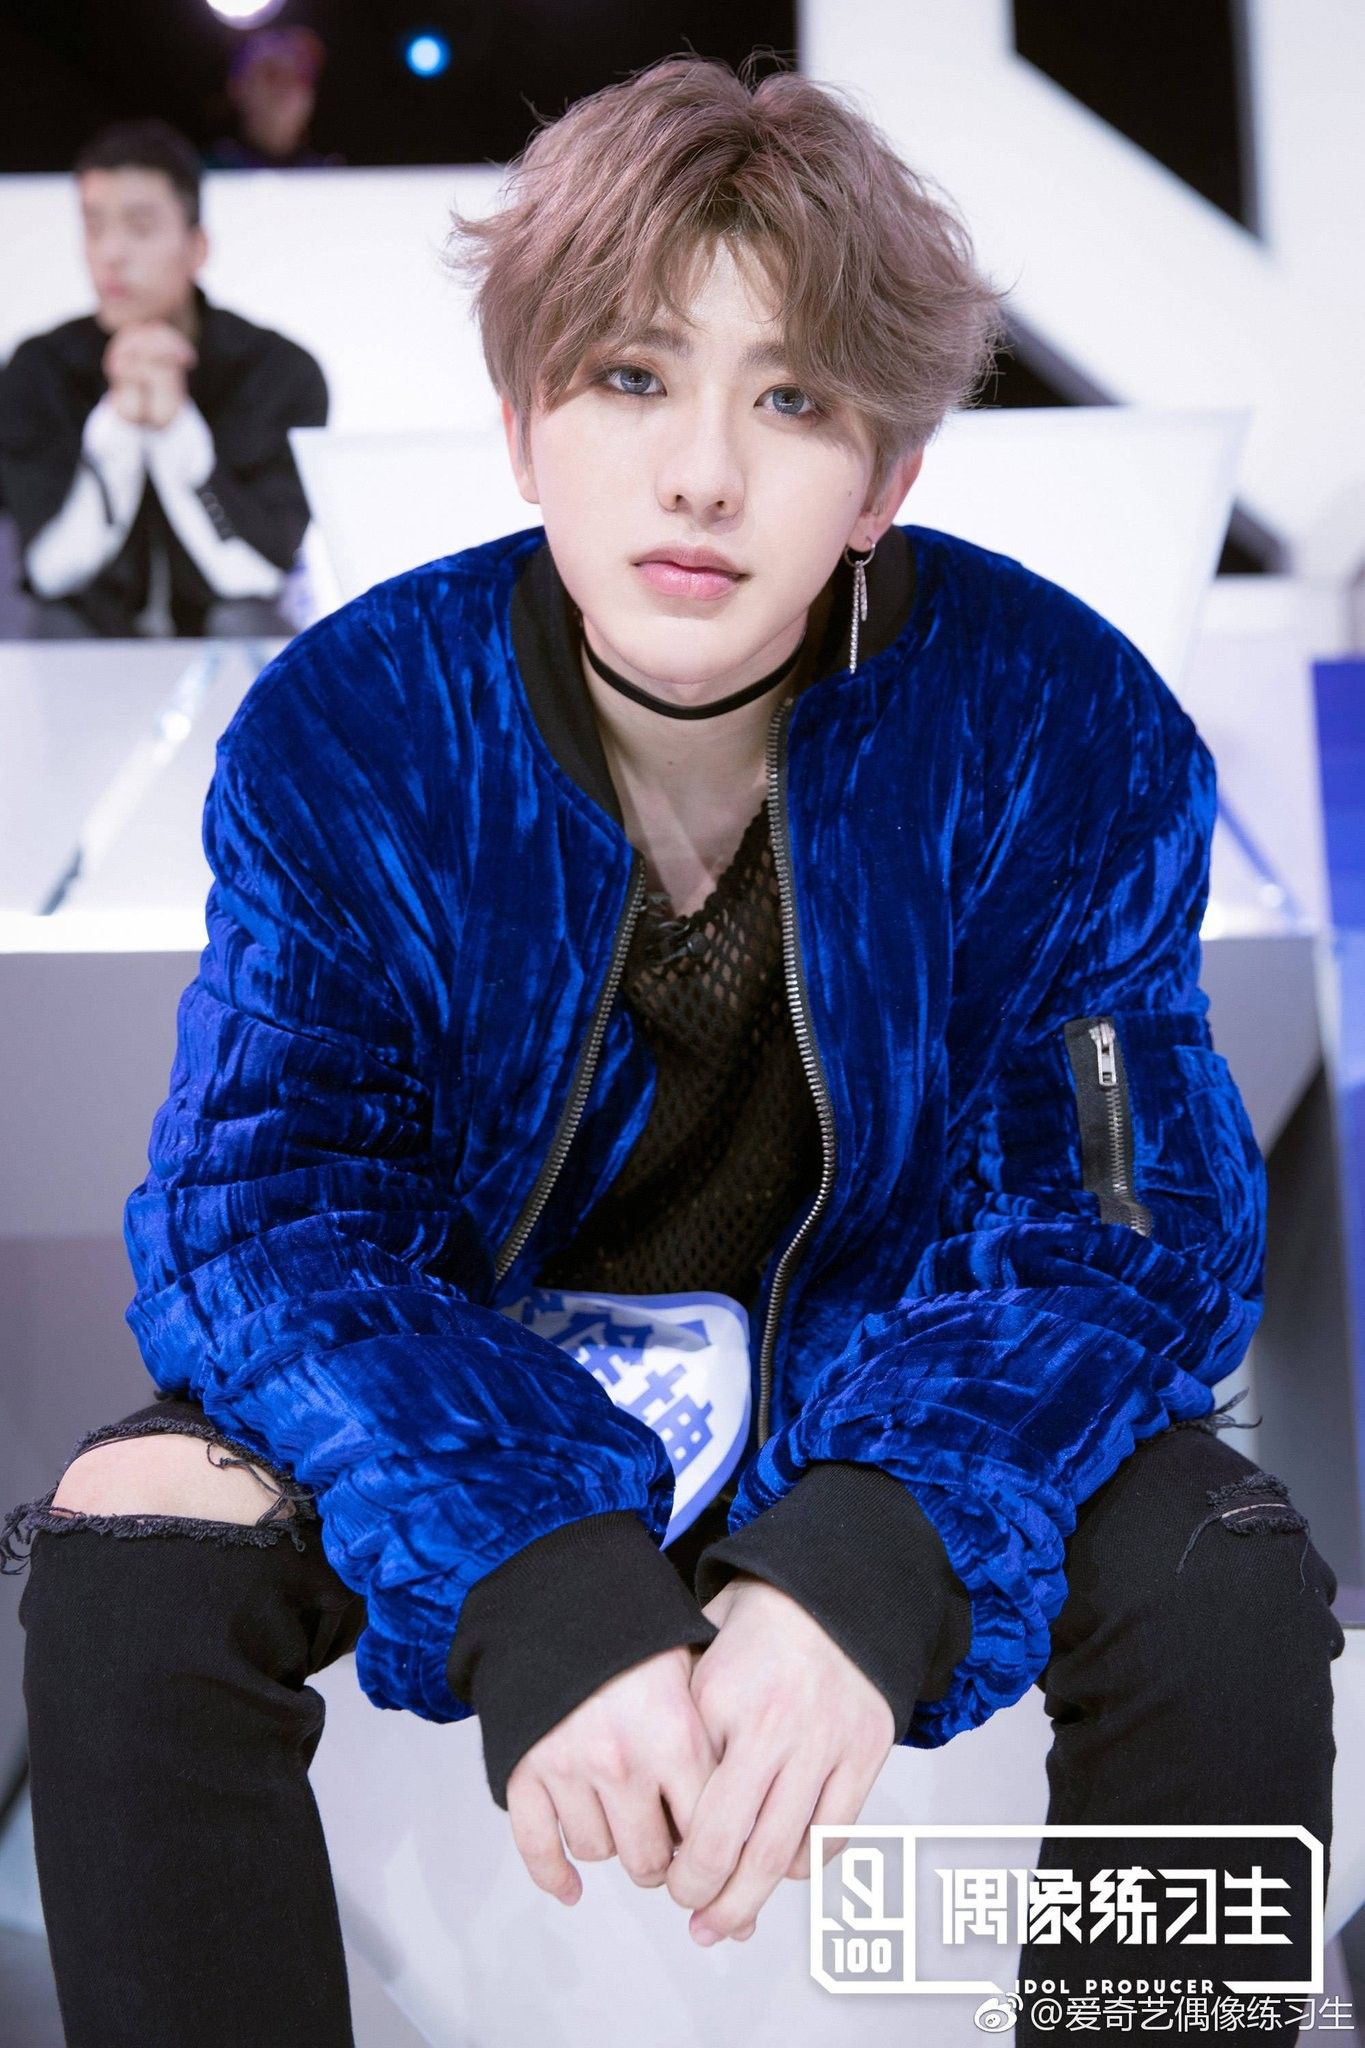 Idol Producer2018 on | cai xukun 一⁎⁺˳ ༚ | Idol, Kpop, Bts, exo